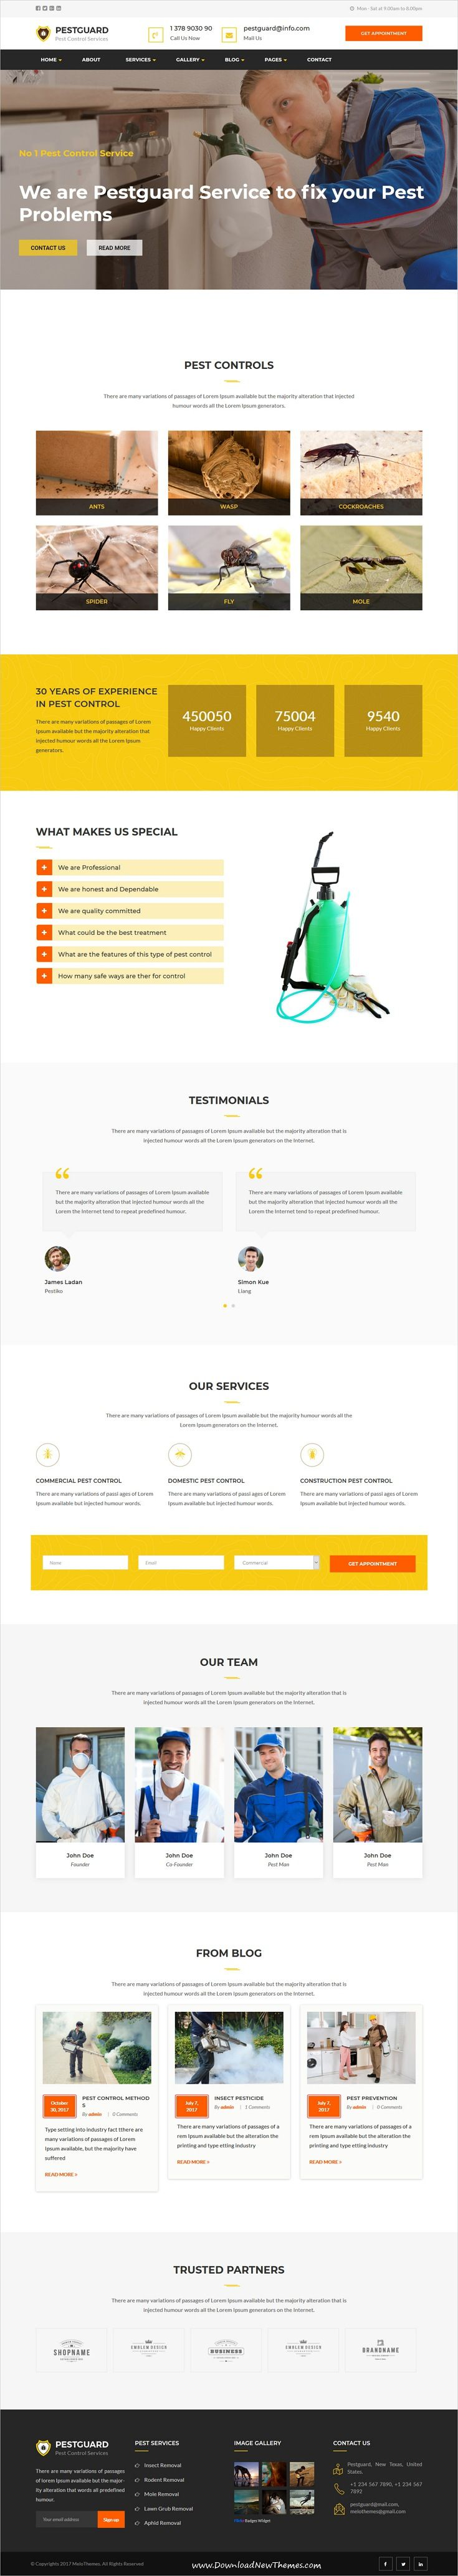 pestguard is clean and modern design 3in1 responsive wordpress theme for pestcontrol and